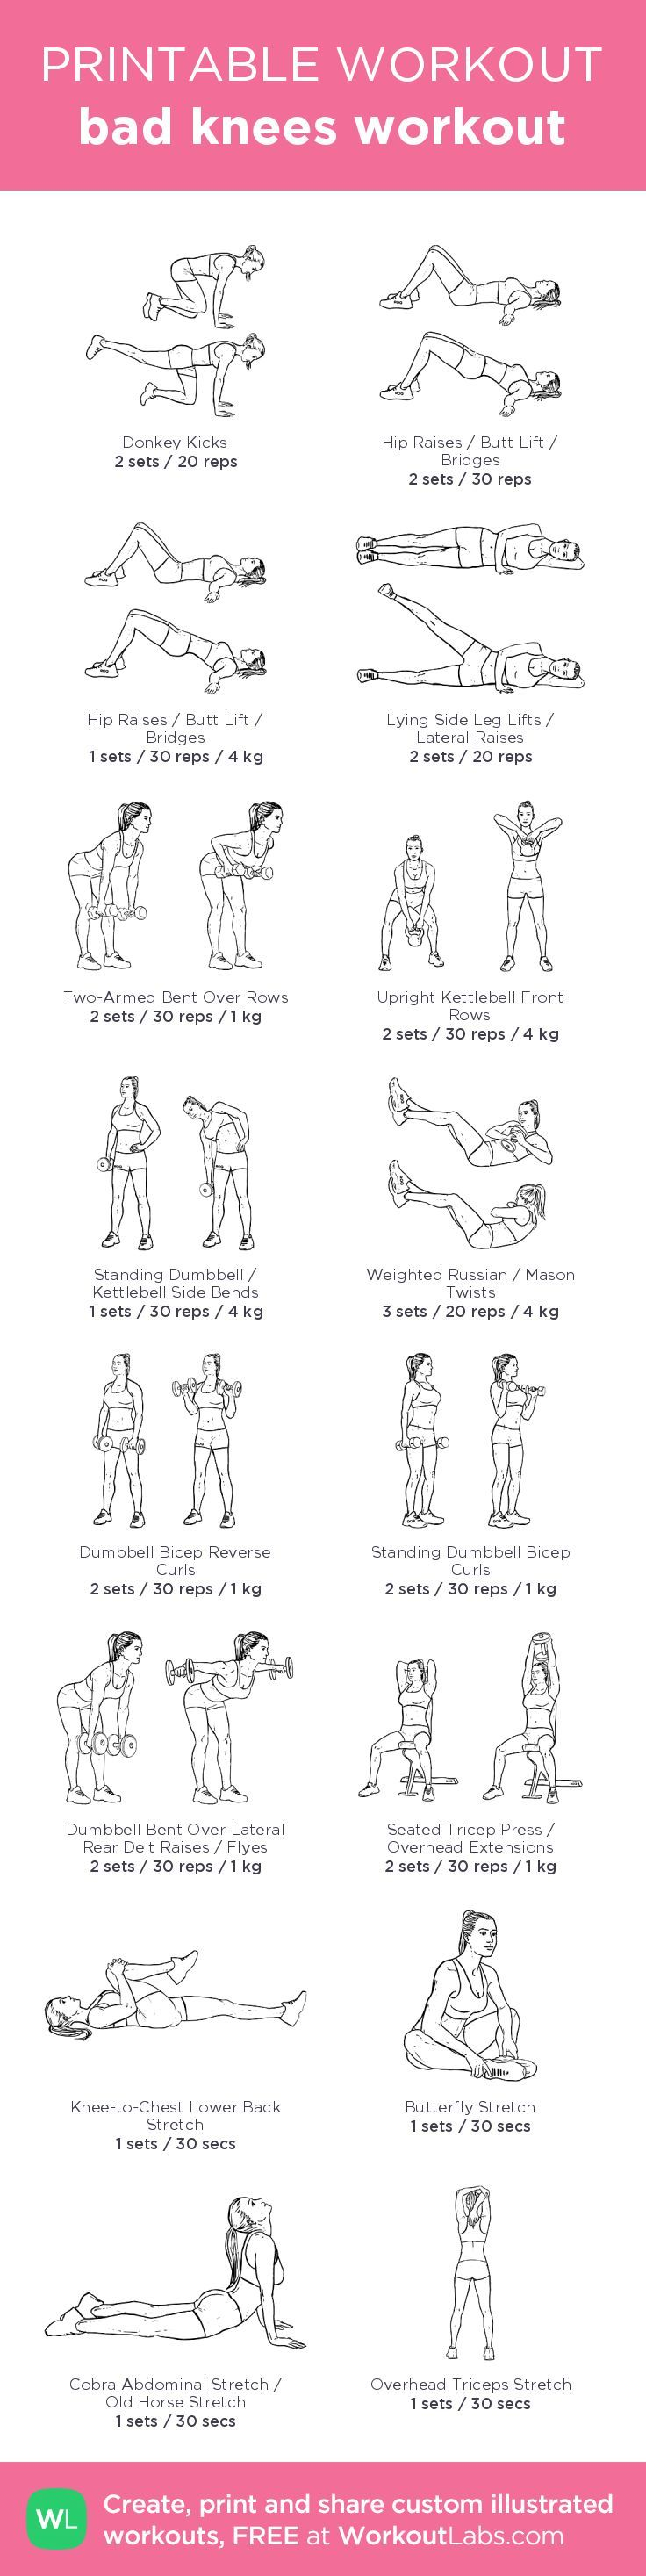 Knee pain diagnosis chart - Bad Knees Workout Illustrated Exercise Plan Created At Http Workoutlabs Com